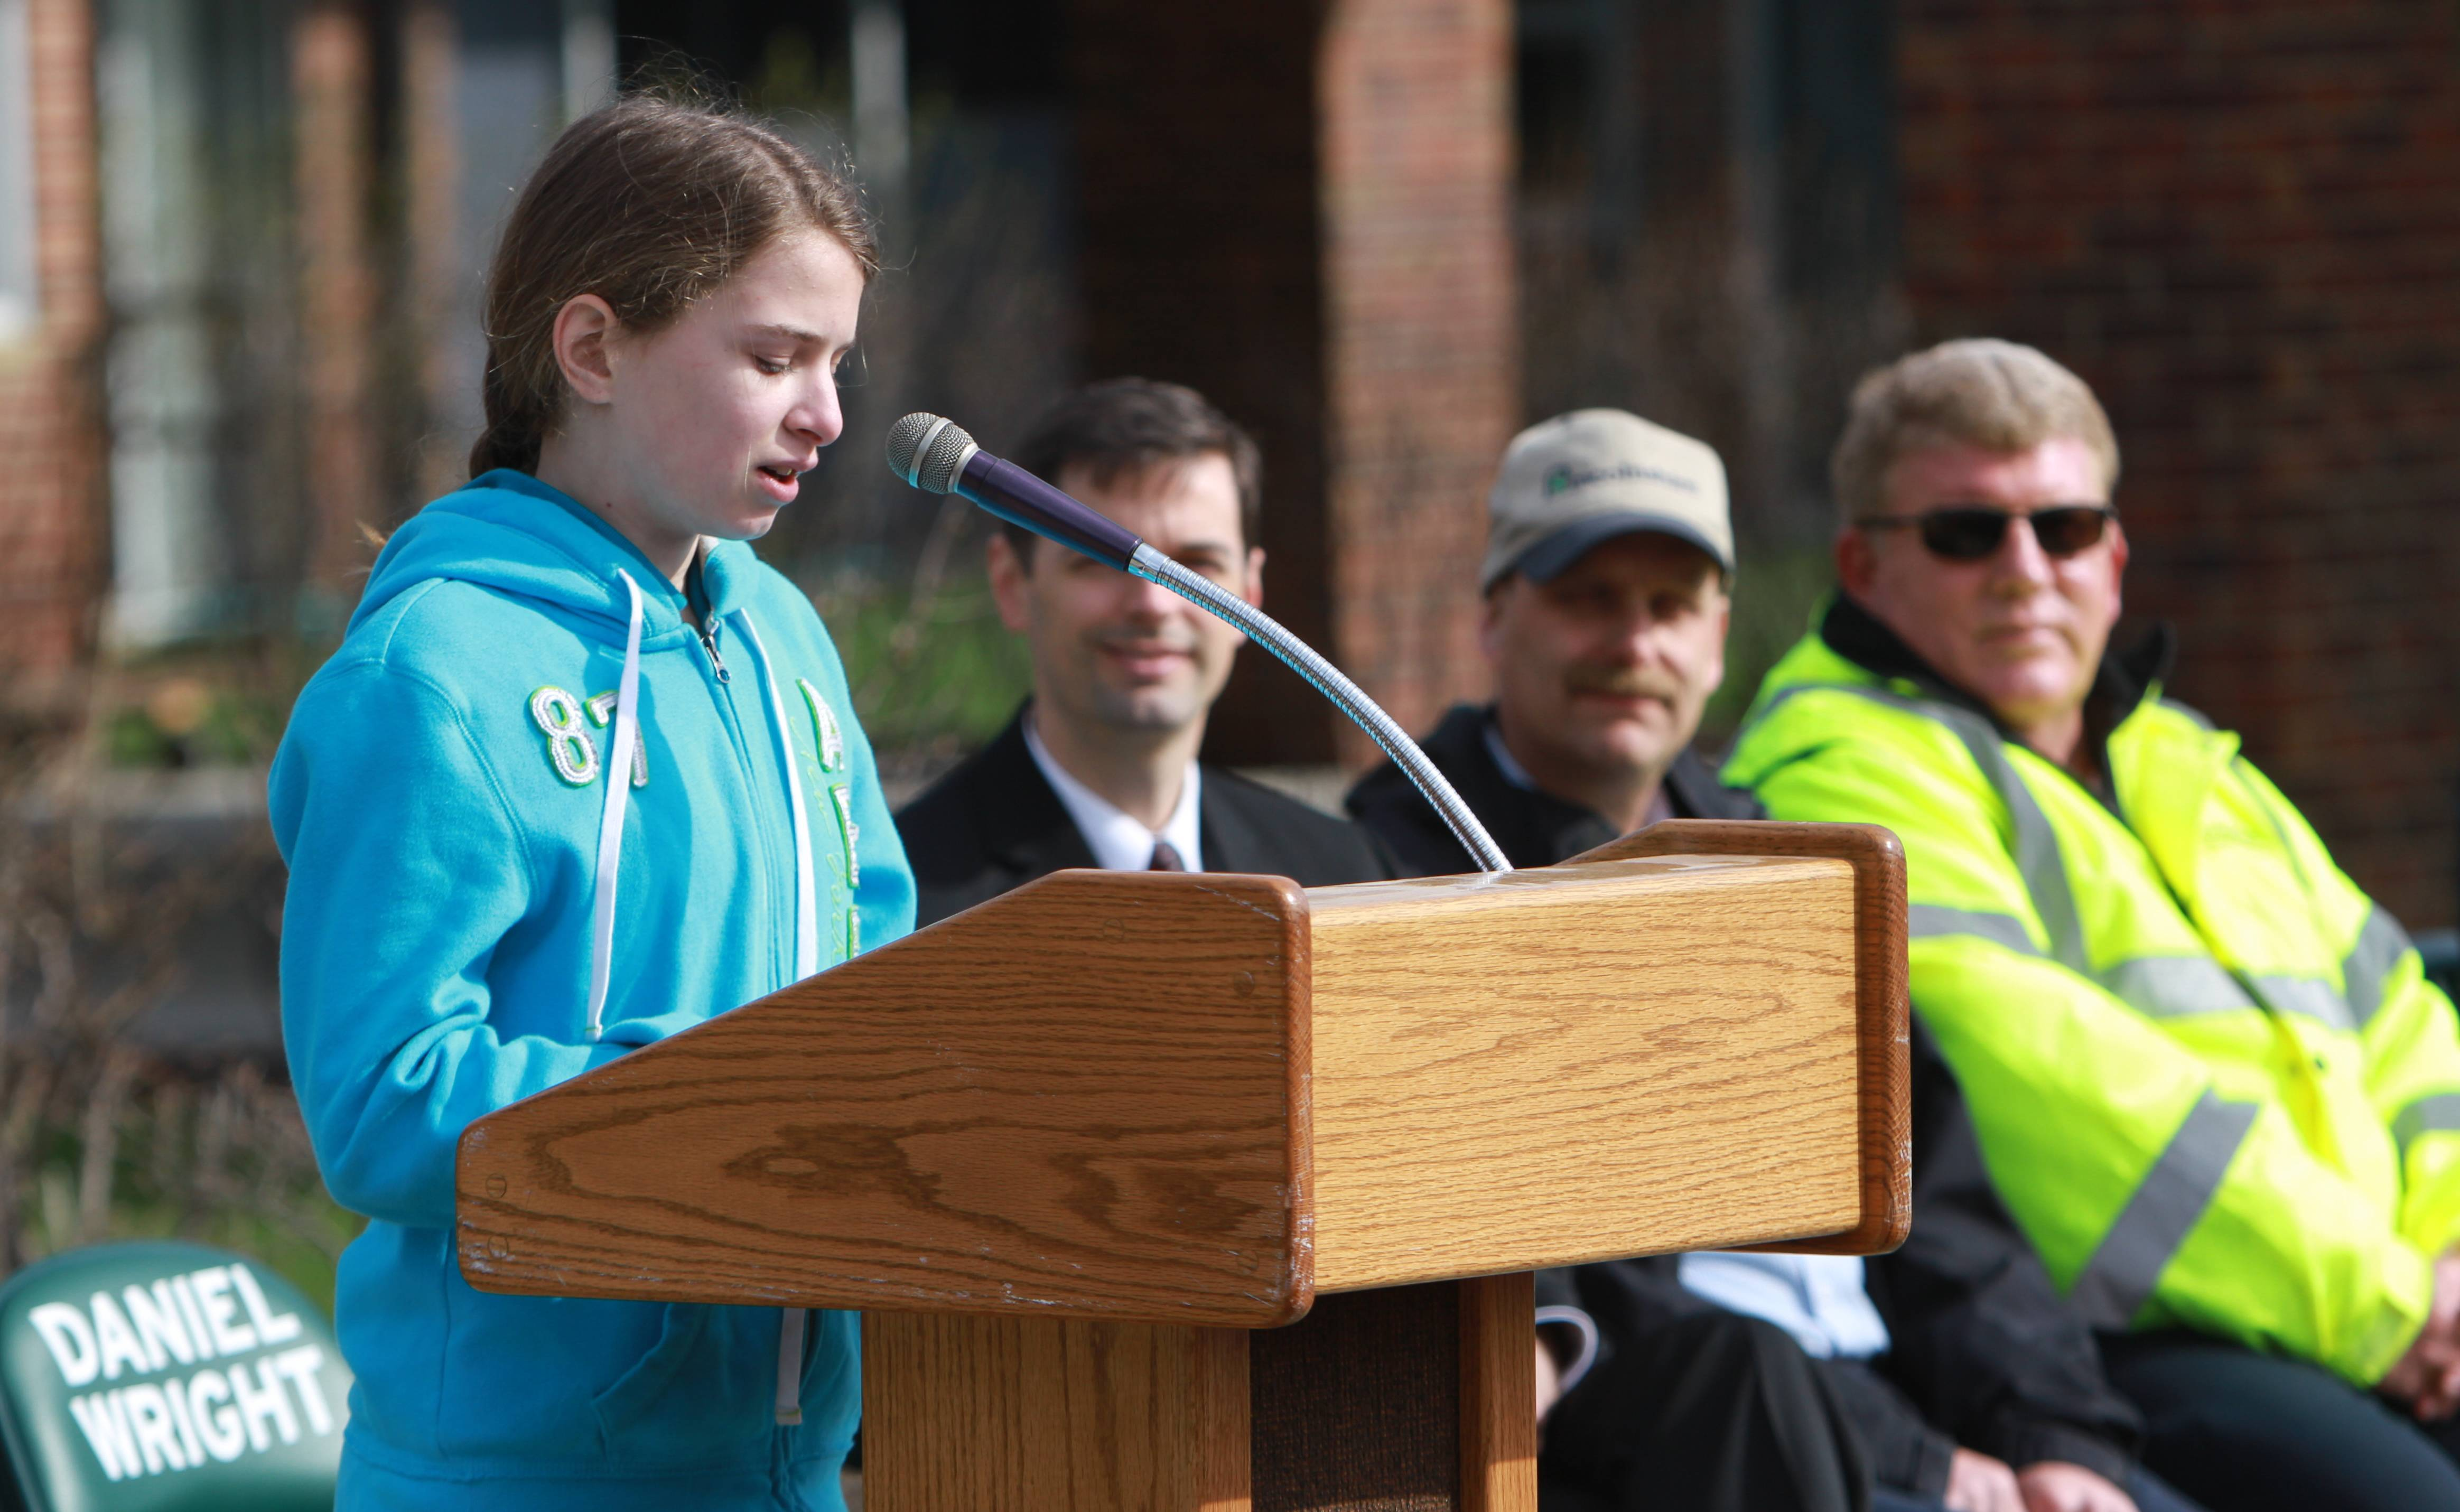 Ellie Warren, a fifth grade student at Daniel Wright Elementary School, speaks about the history of Arbor Day during a tree-planting ceremony Friday at the Lincolnshire school.